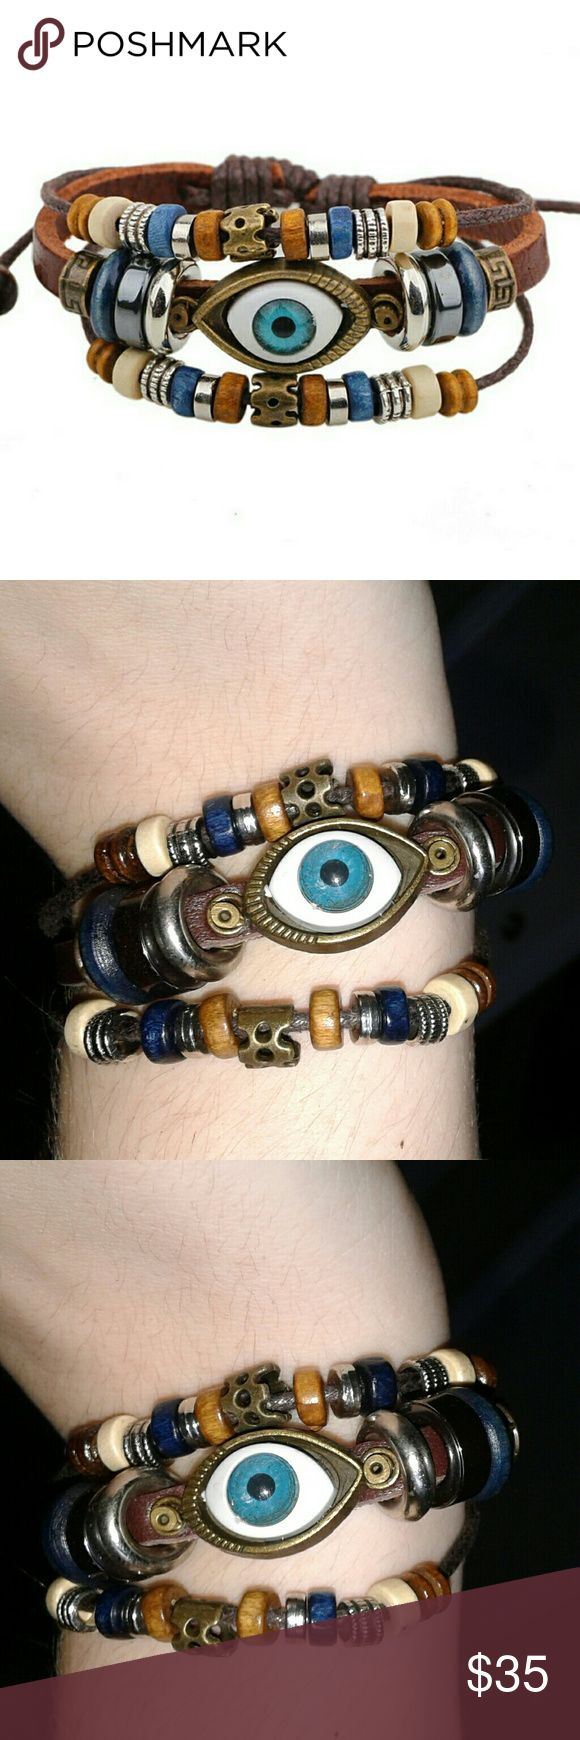 *New* Eye Beaded Bracelet This is 3 bracelets in one and its adjustable via knots in the back. The main part is a fake leather.                                                     Tags- beads, steampunk, hot topic, mystical, mysterious, wood, wooden, metal, eyes, surreal, art, blue, brown. Jewelry Bracelets